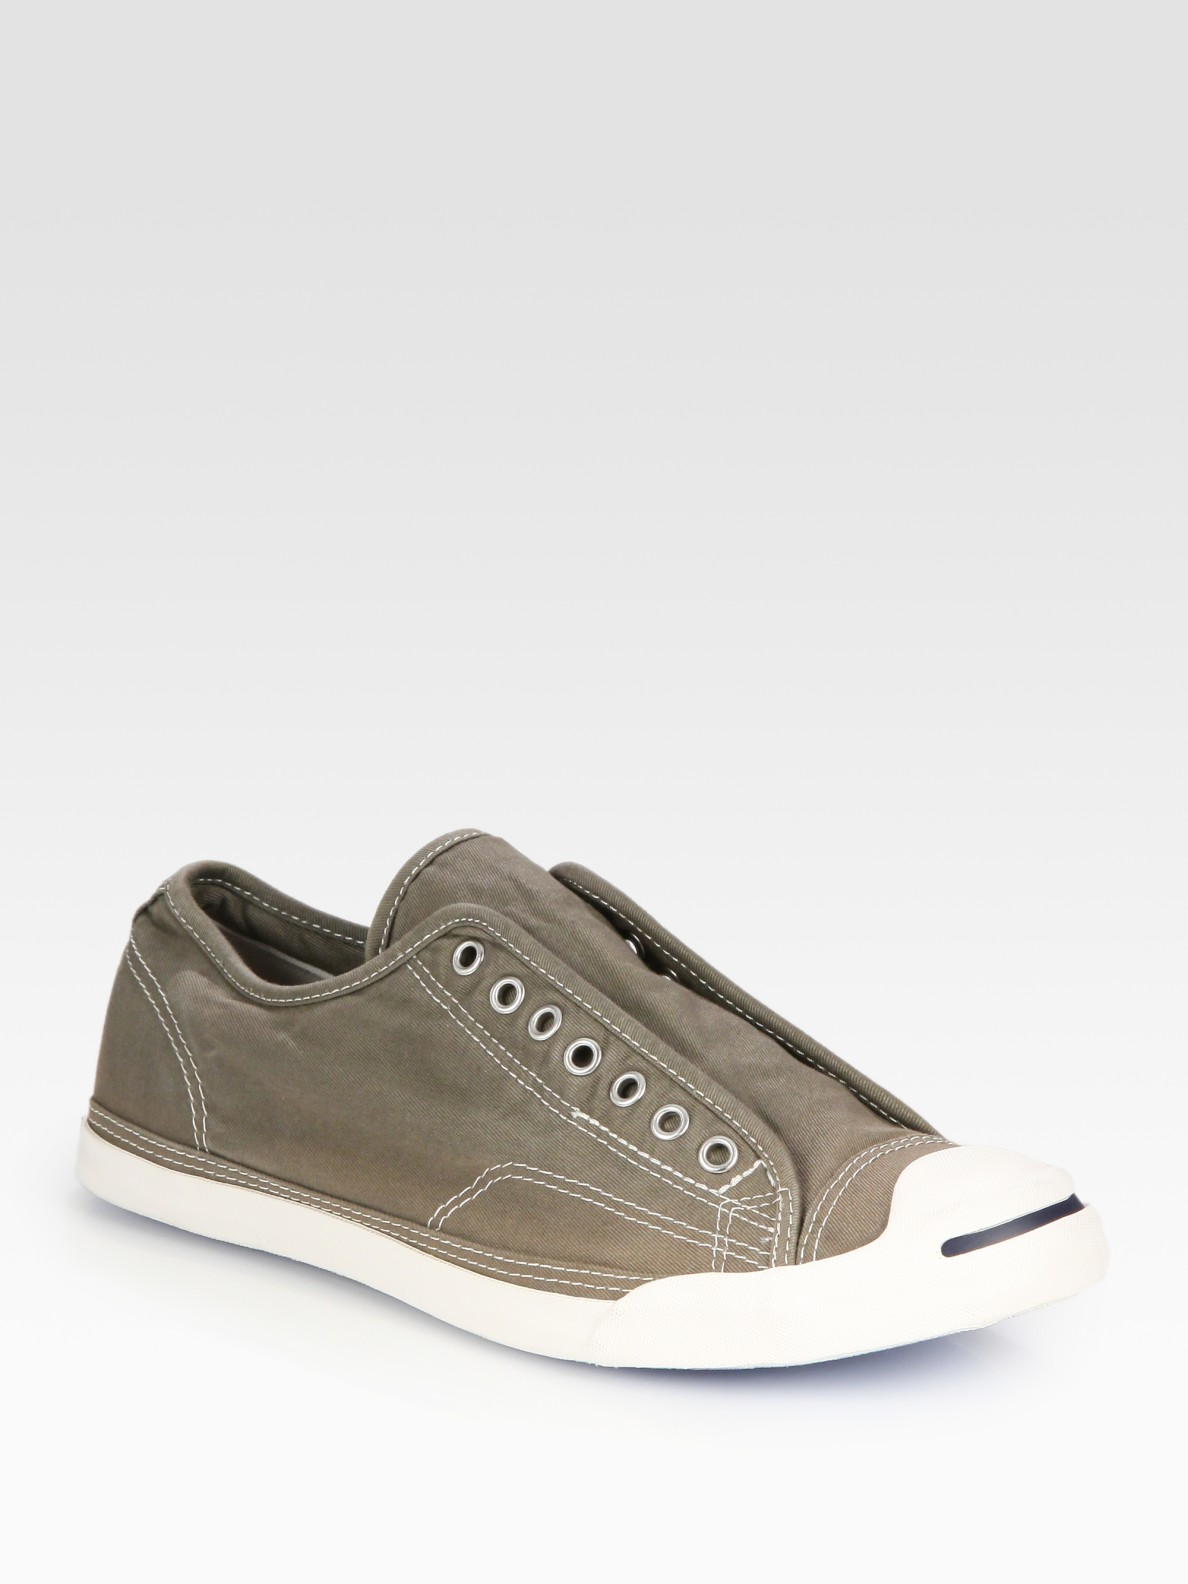 Jack Purcell Laceless Canvas Sneakers